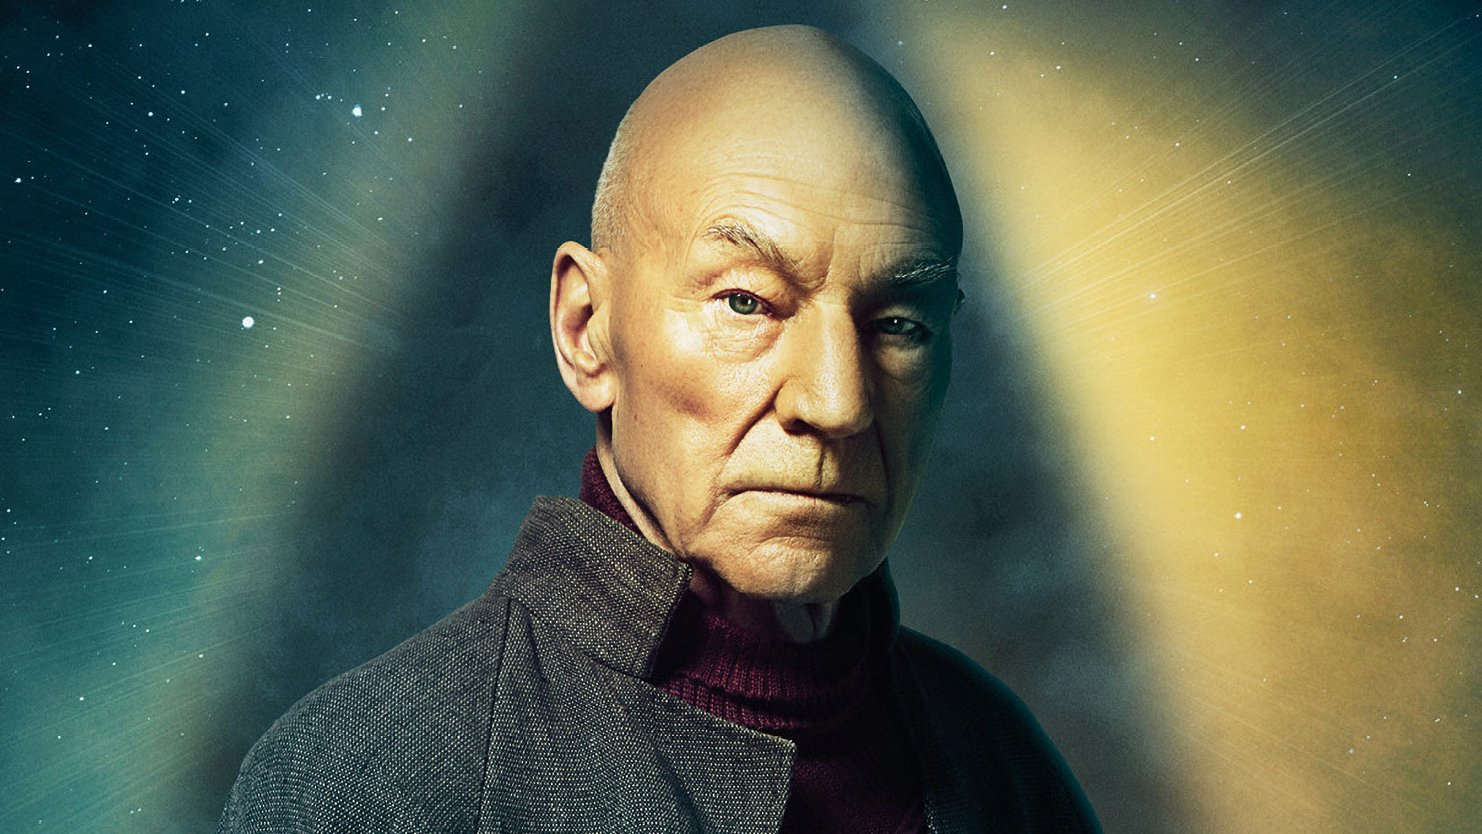 Exclusive: Patrick Stewart Being Recast As Jean-Luc Picard